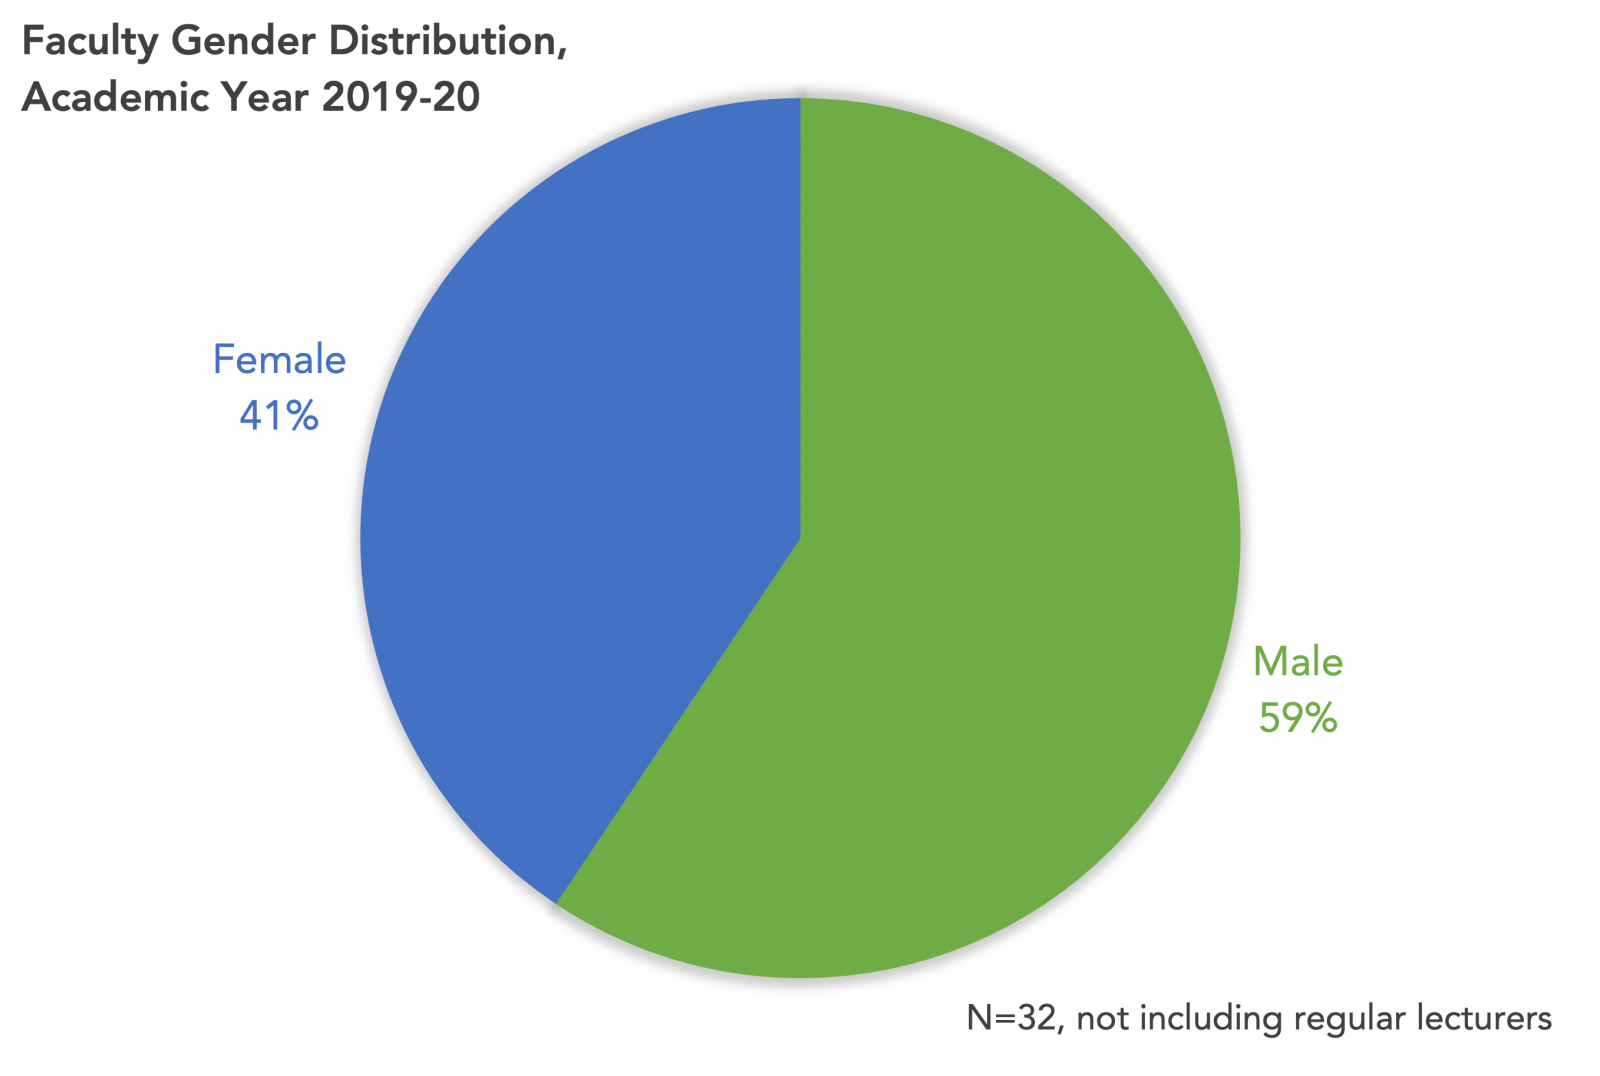 MOL Faculty Gender Distribution AY 2019-20